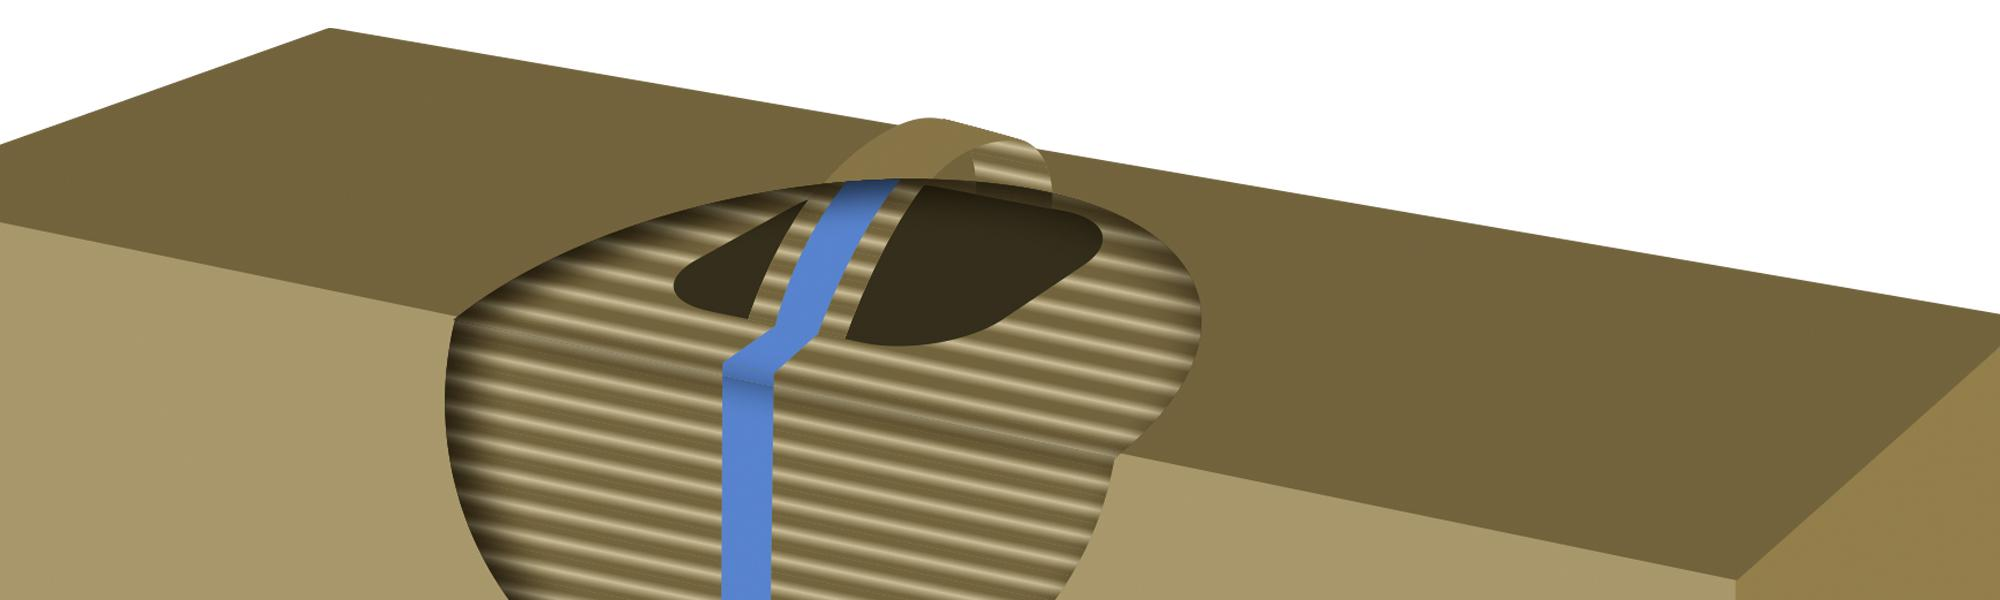 Diagram showing Lemtapes reinforcement tape underneath the top layer of corrugated cardboard.